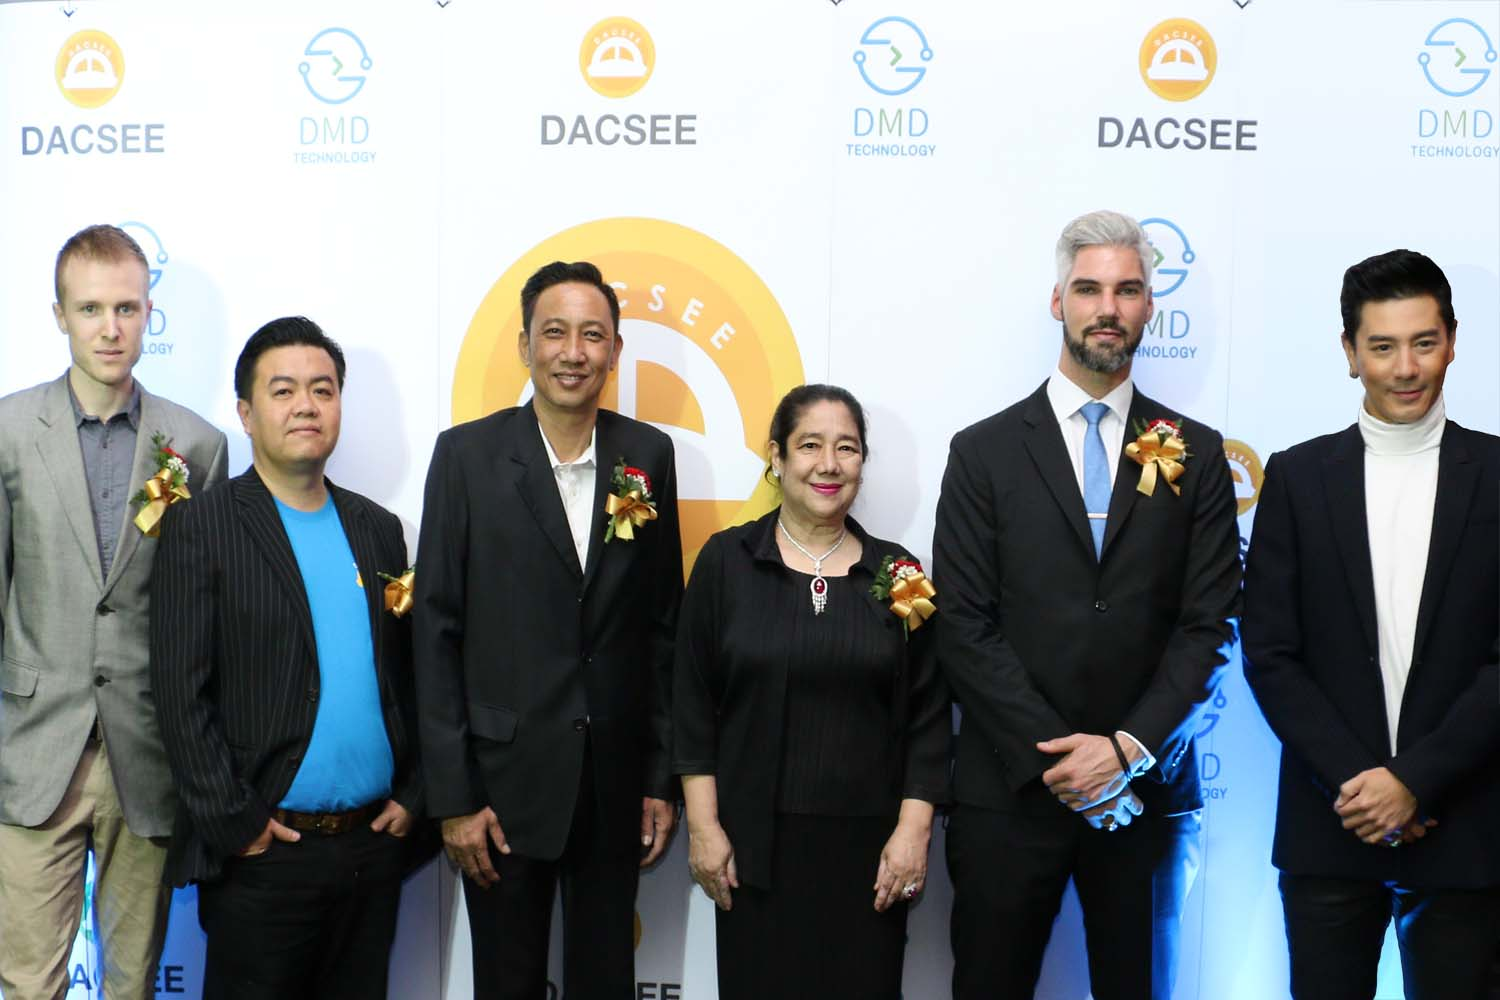 DACSEE management